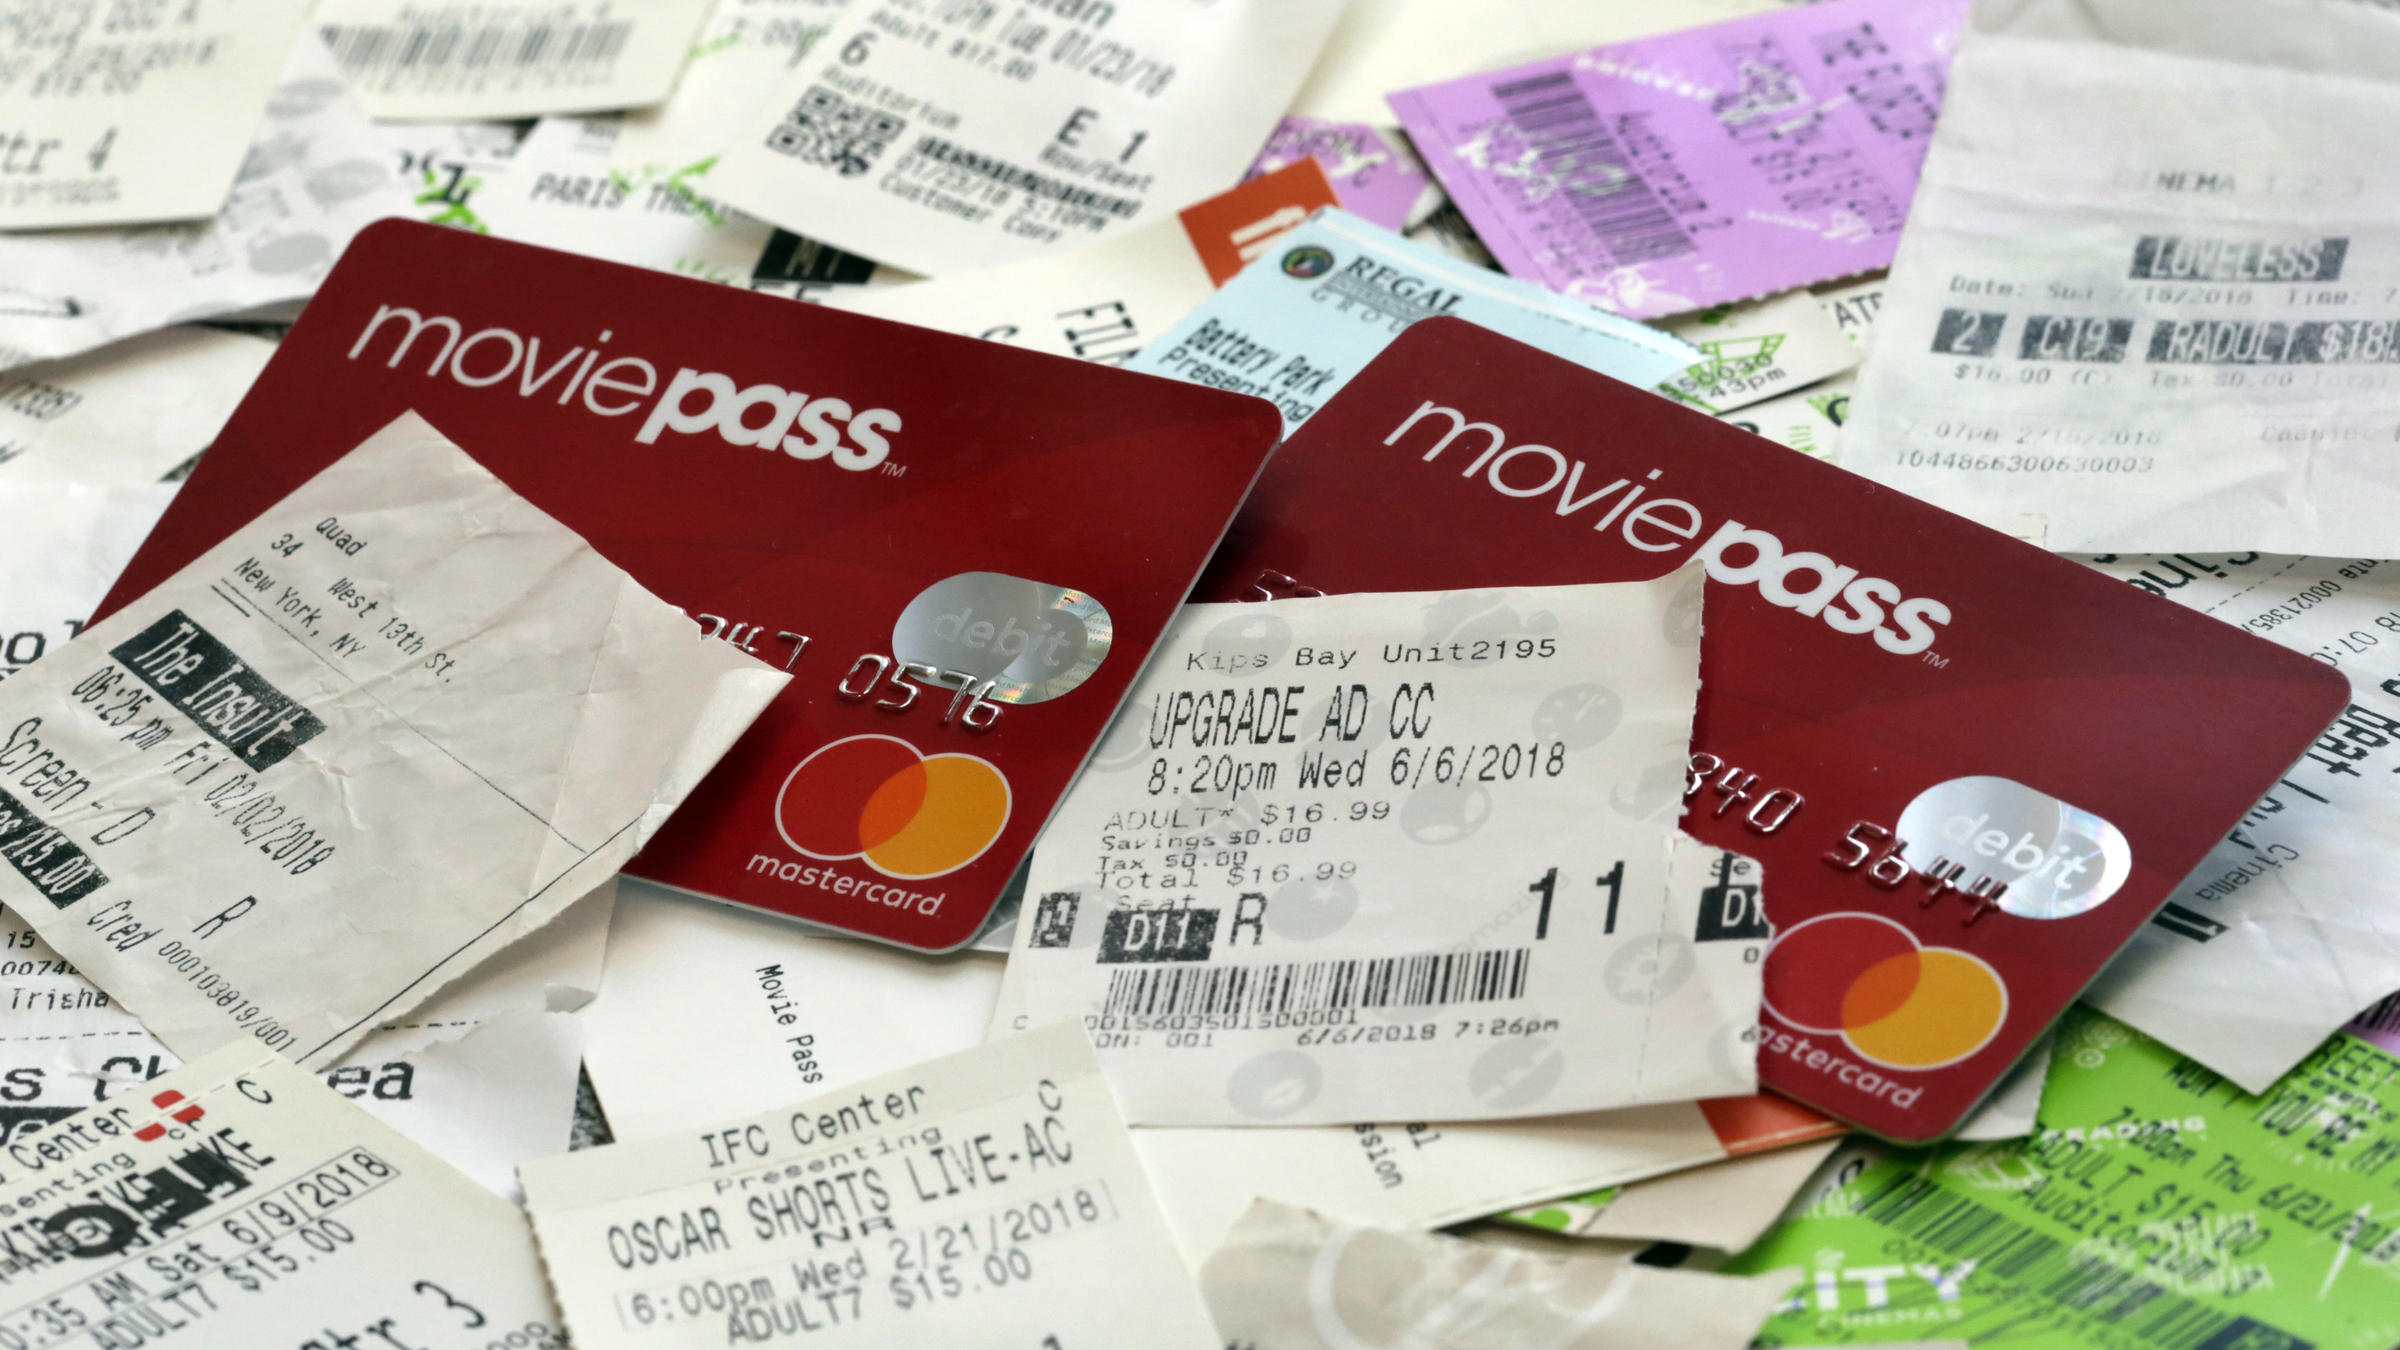 MoviePass to shut down Saturday after failing to raise capital